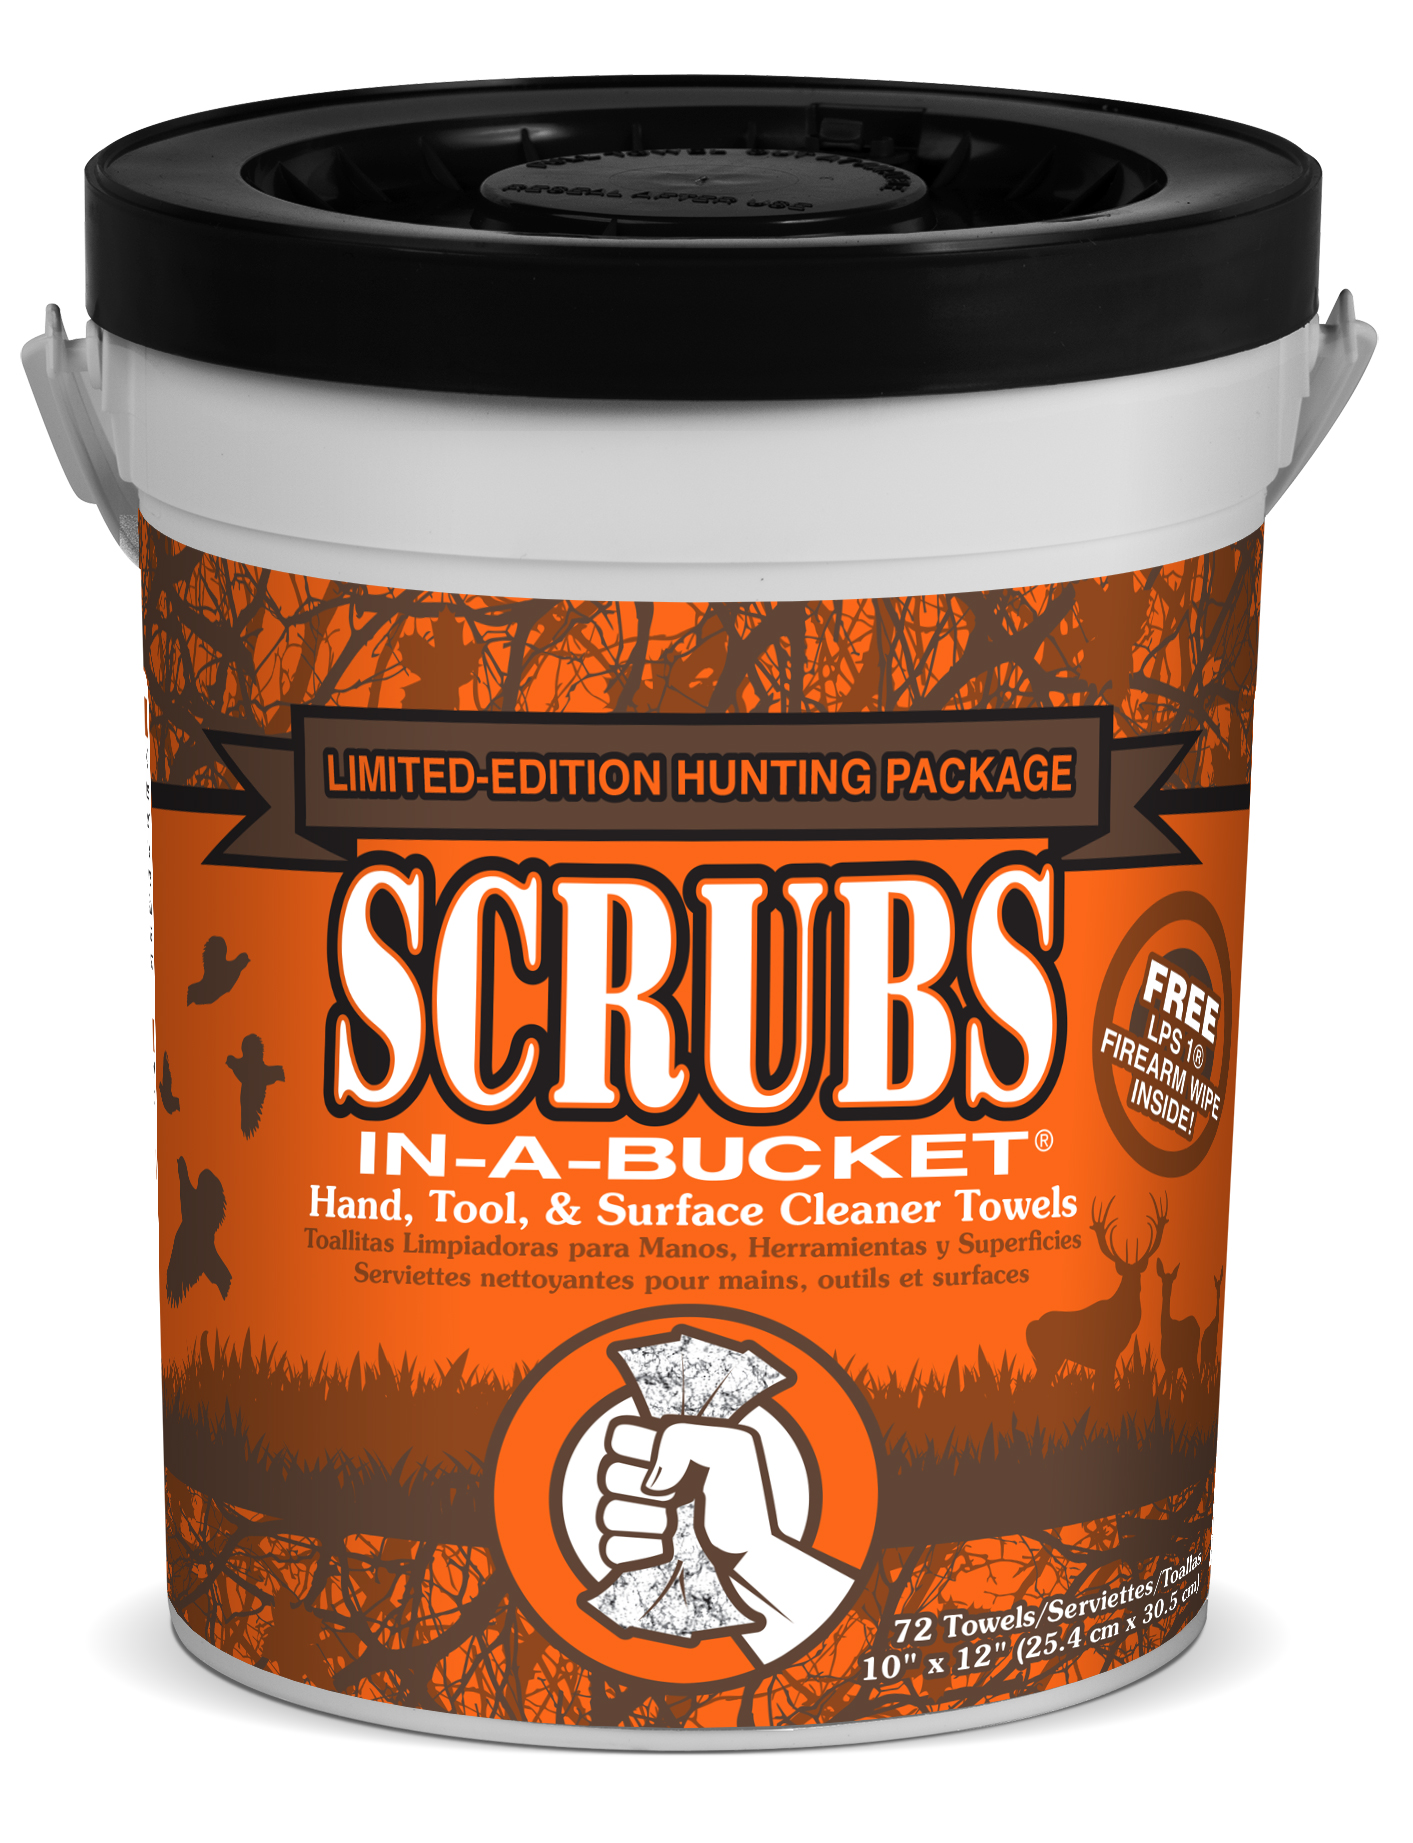 SCRUBS Limited-Edition Hunting Package